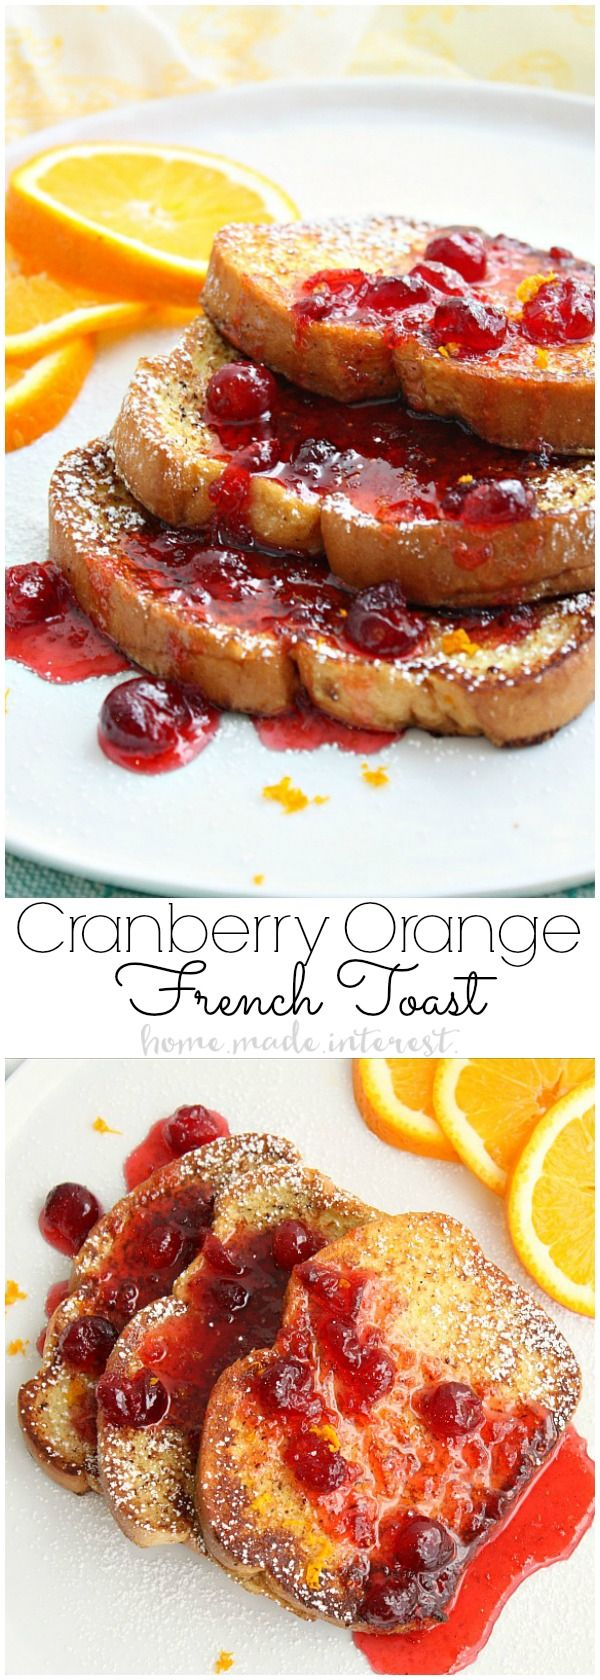 An easy breakfast or brunch recipe this cranberry orange french toast recipe is going to have everyone asking for seconds.